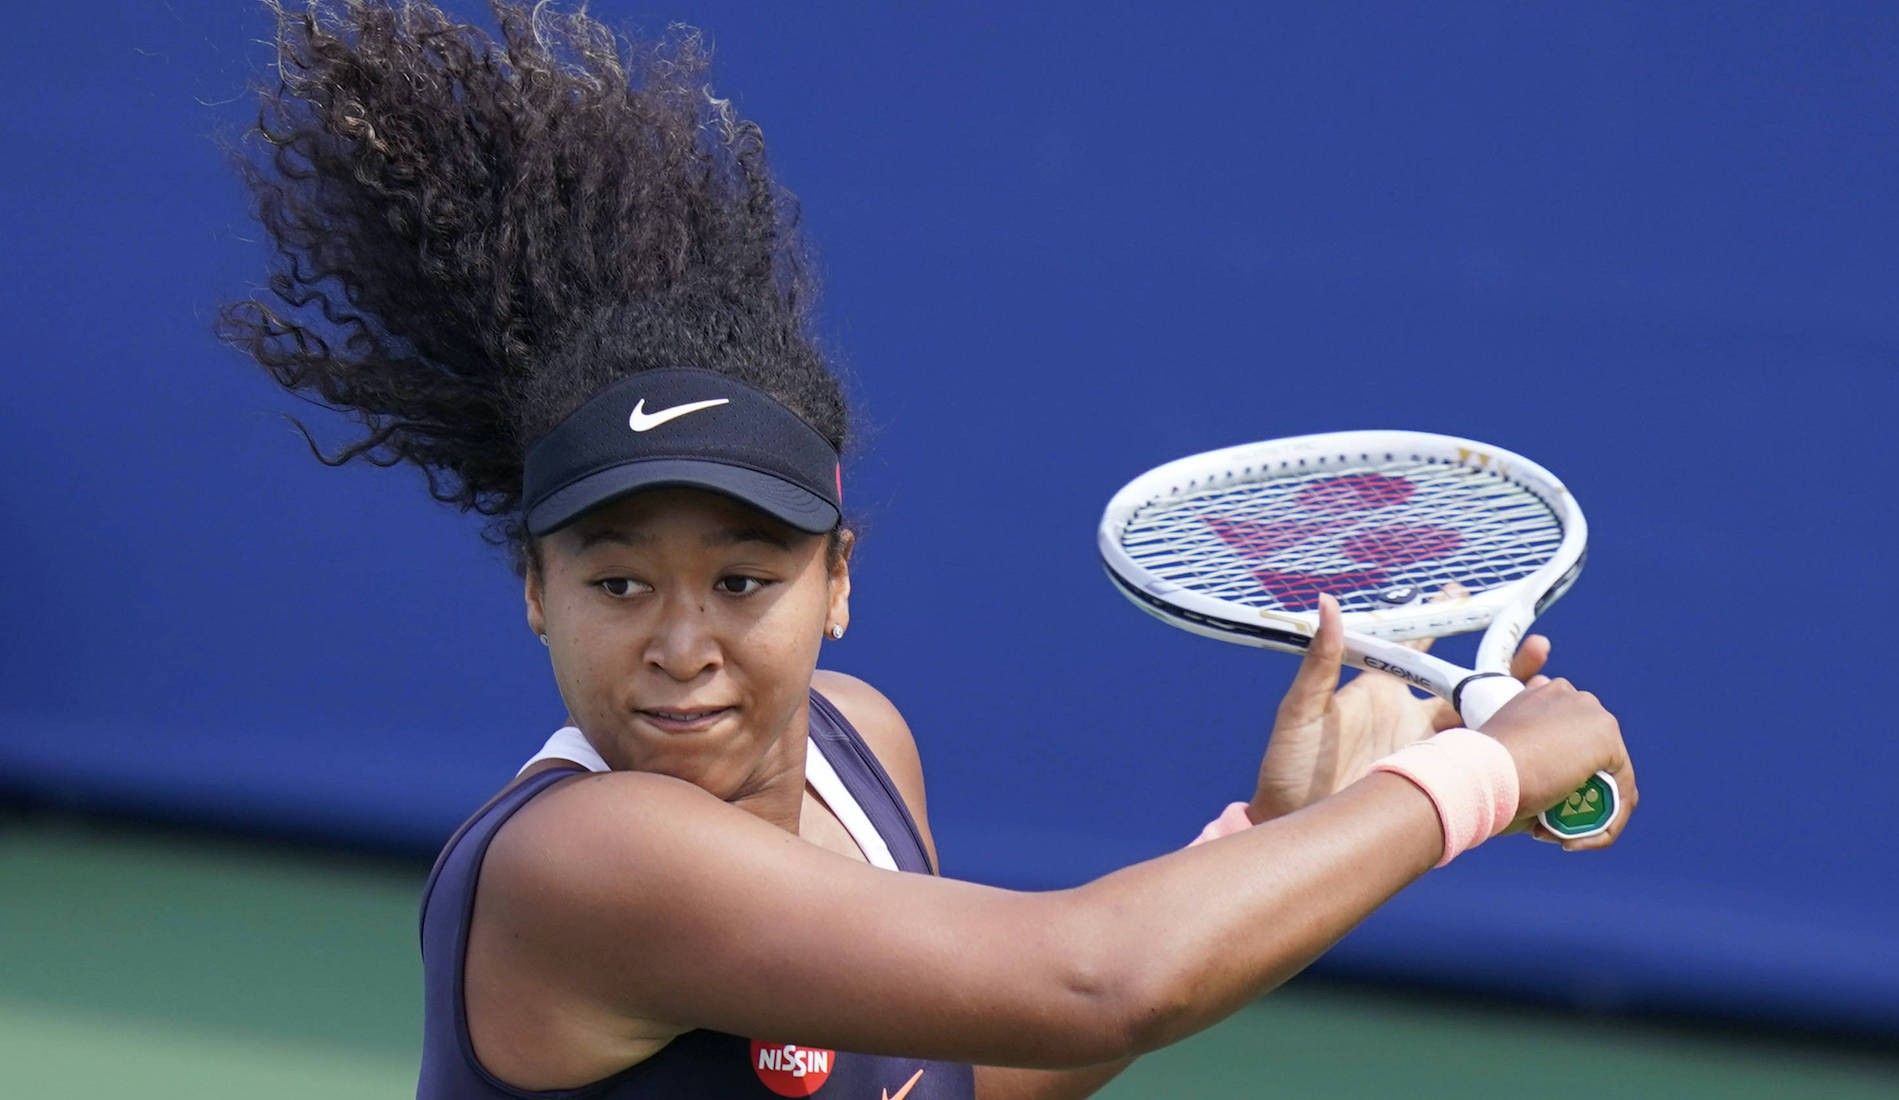 Naomi Osaka at Western and Southern Open, August 2020, Flushing Meadows, New York